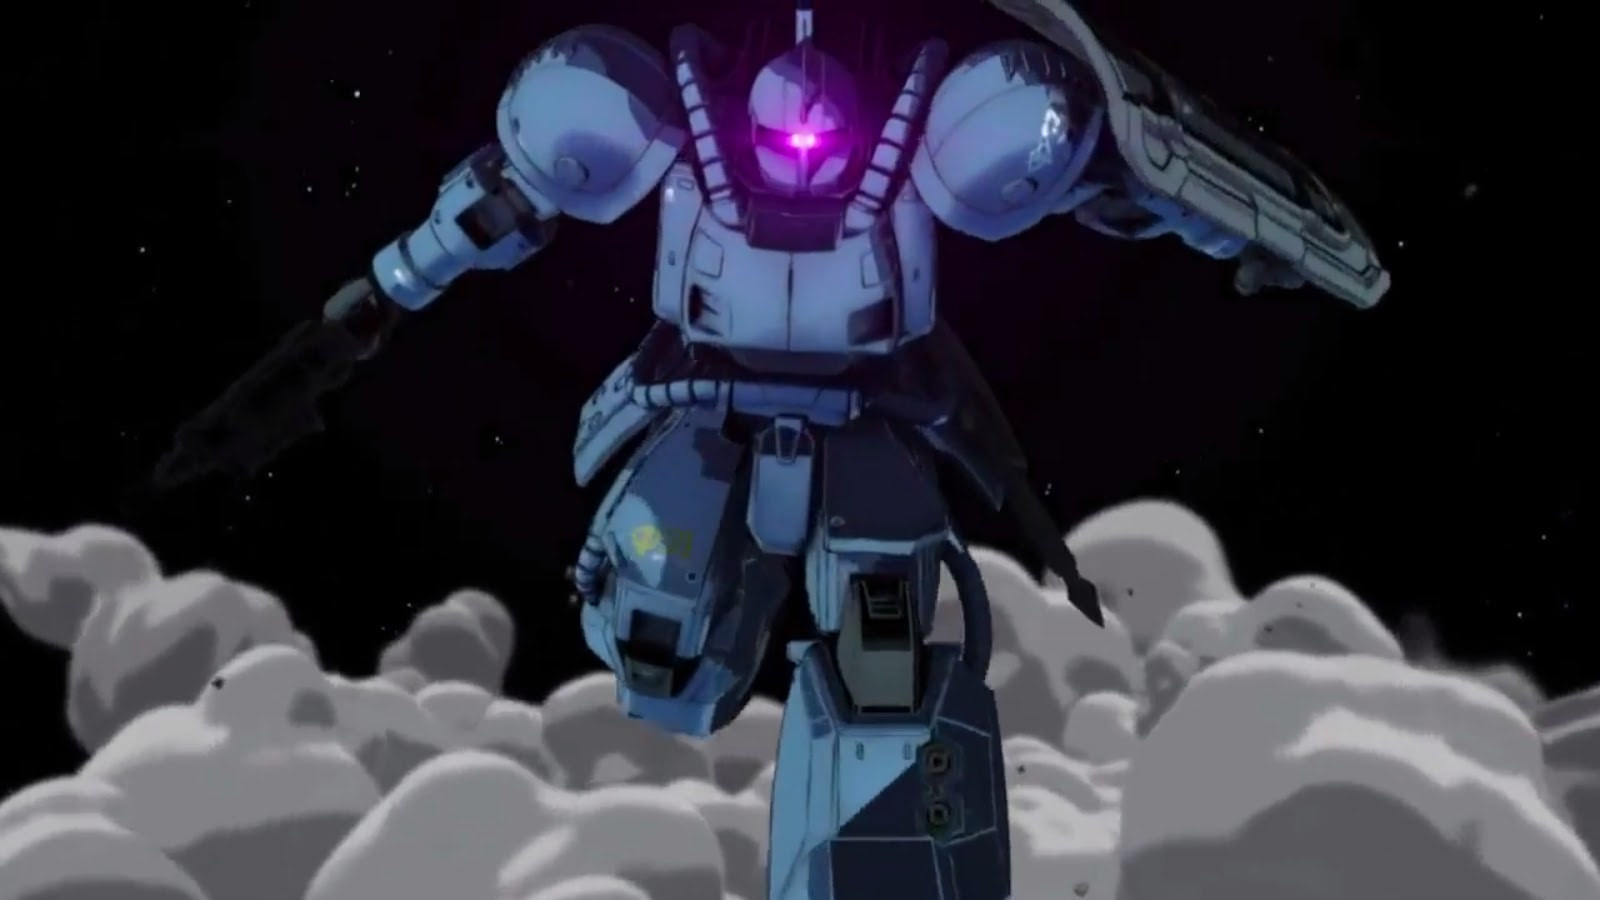 Mobile Suit Gundam The Origin IV Battle Action PV + Theme Song - Gundam Kits Collection News and ...